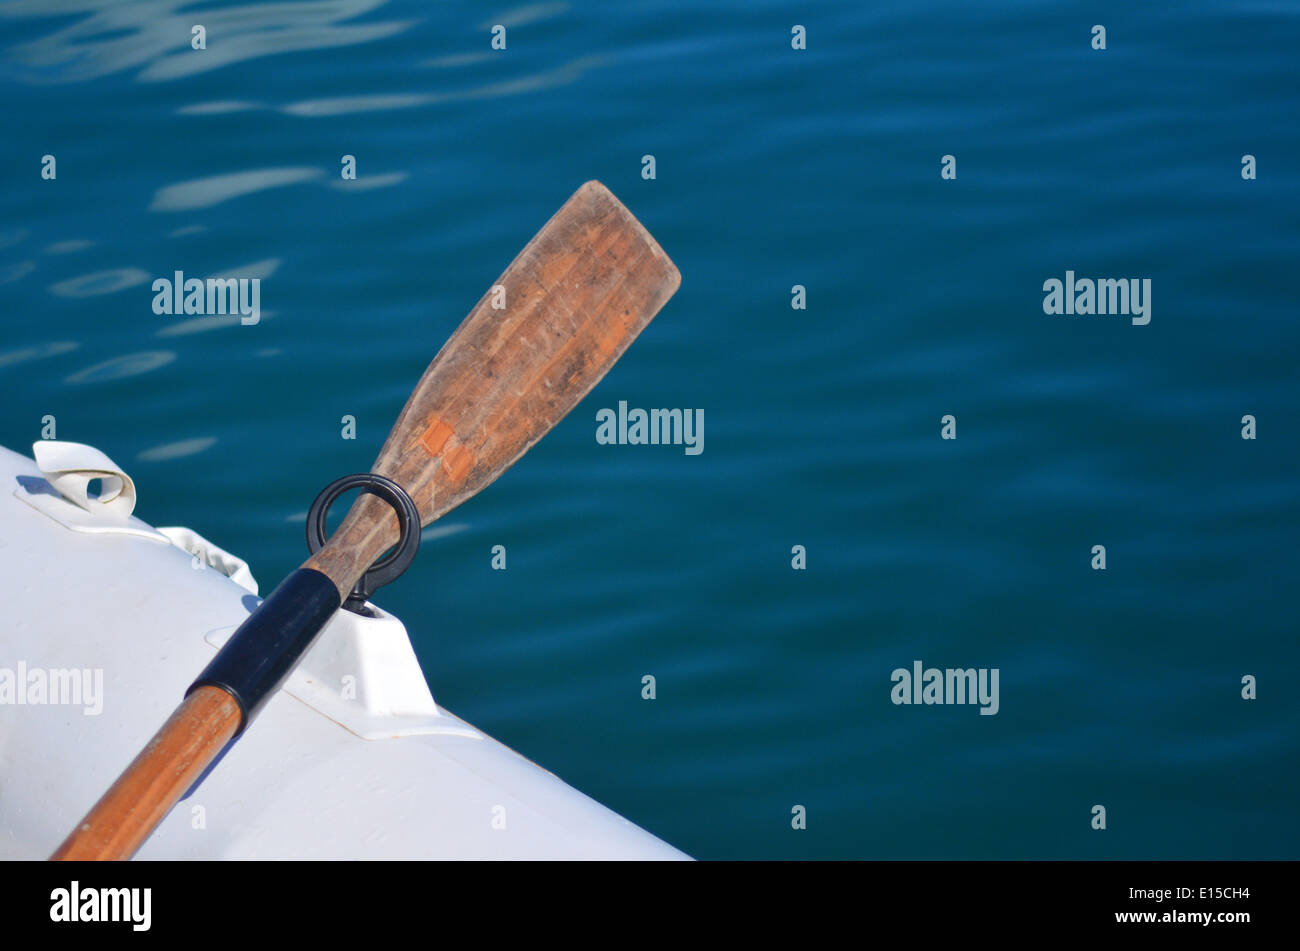 White dingy boat with wooden oar mooring at sea. Concept photo of sailing, cruise, travel, vacation. Copy space - Stock Image